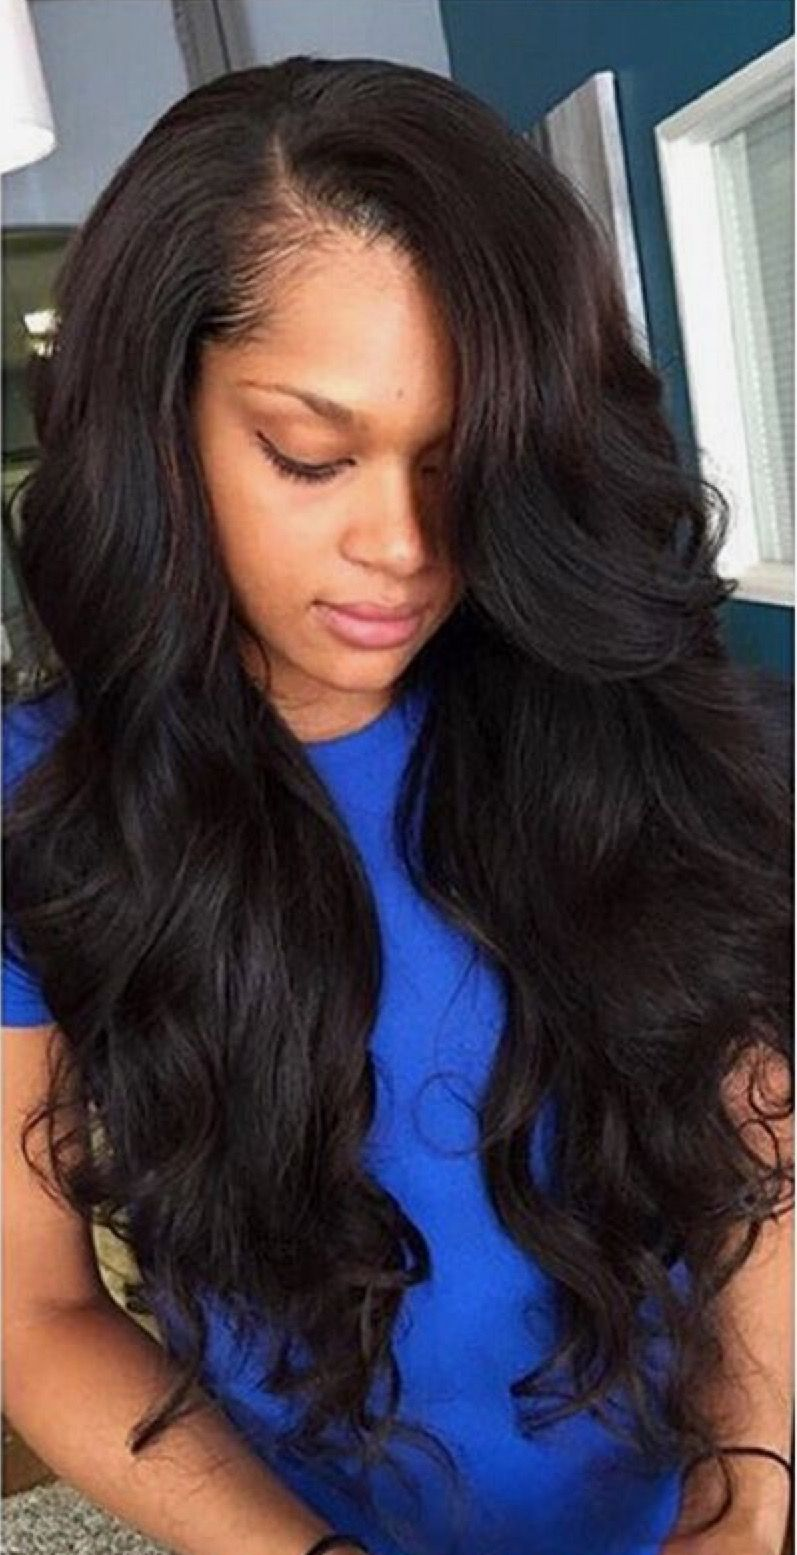 Yes Body Wave Hairstyle Hair Waves Body Wave Hair Wig Hairstyles